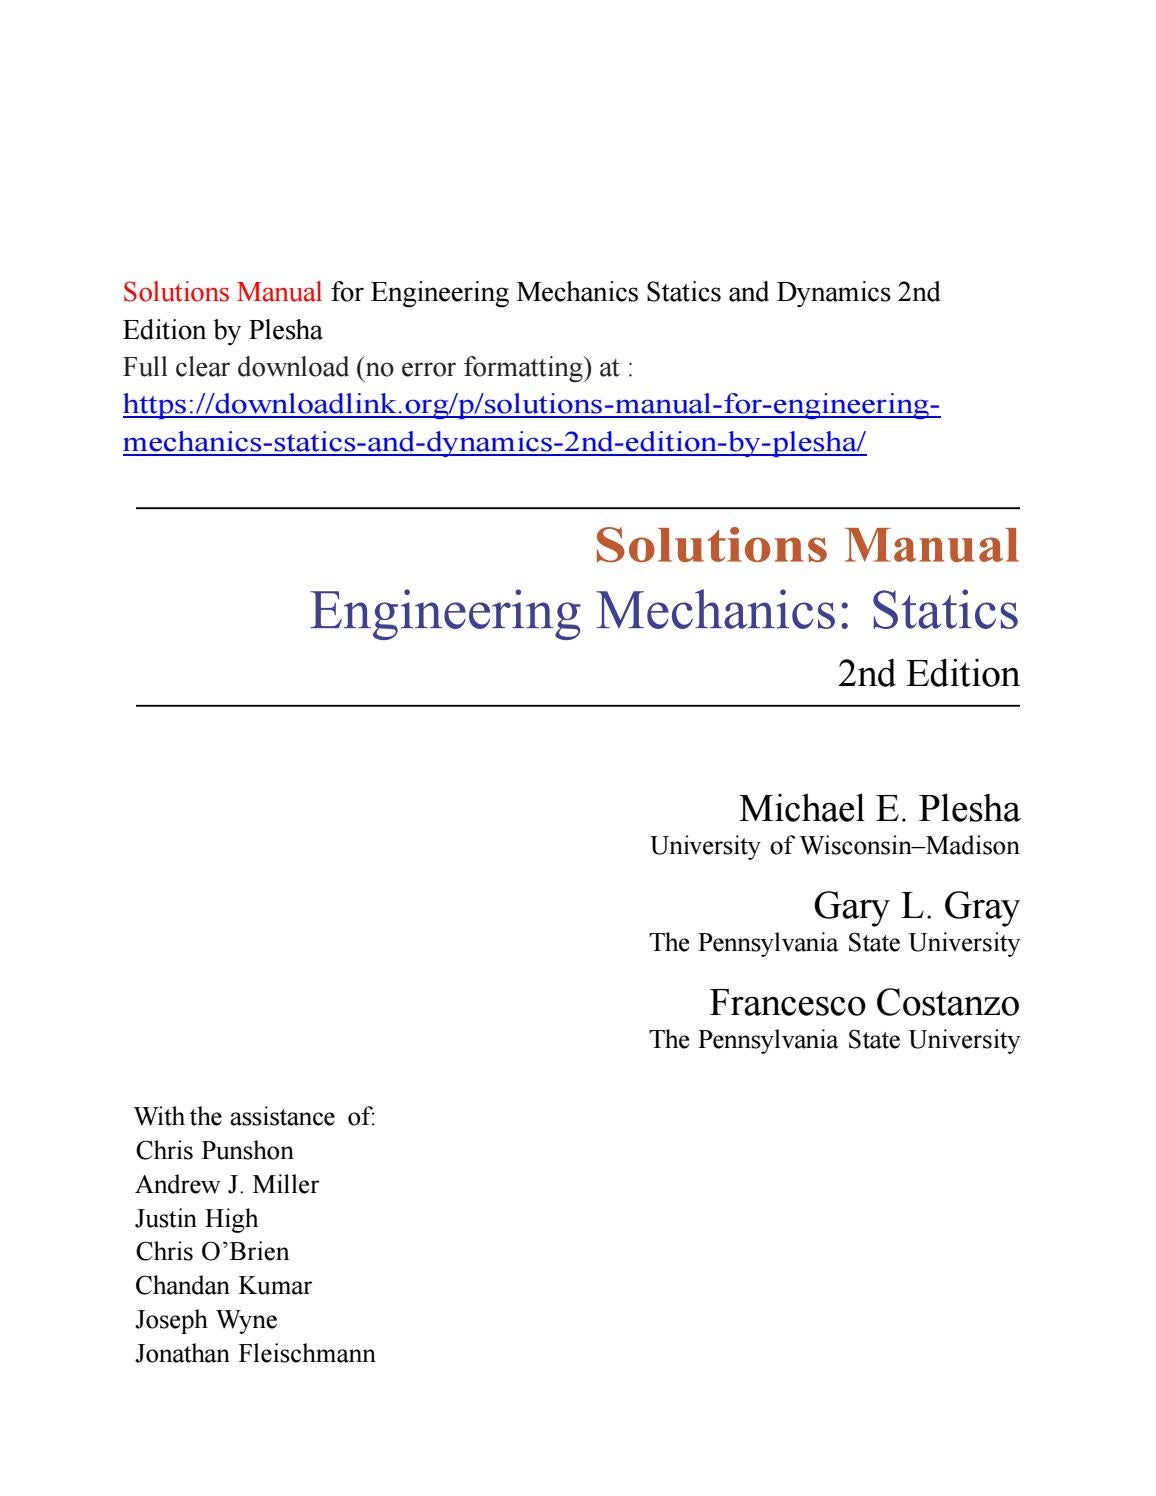 Solutions Manual for Engineering Mechanics Statics and Dynamics 2nd Edition  by Plesha by kiki5324 - issuu